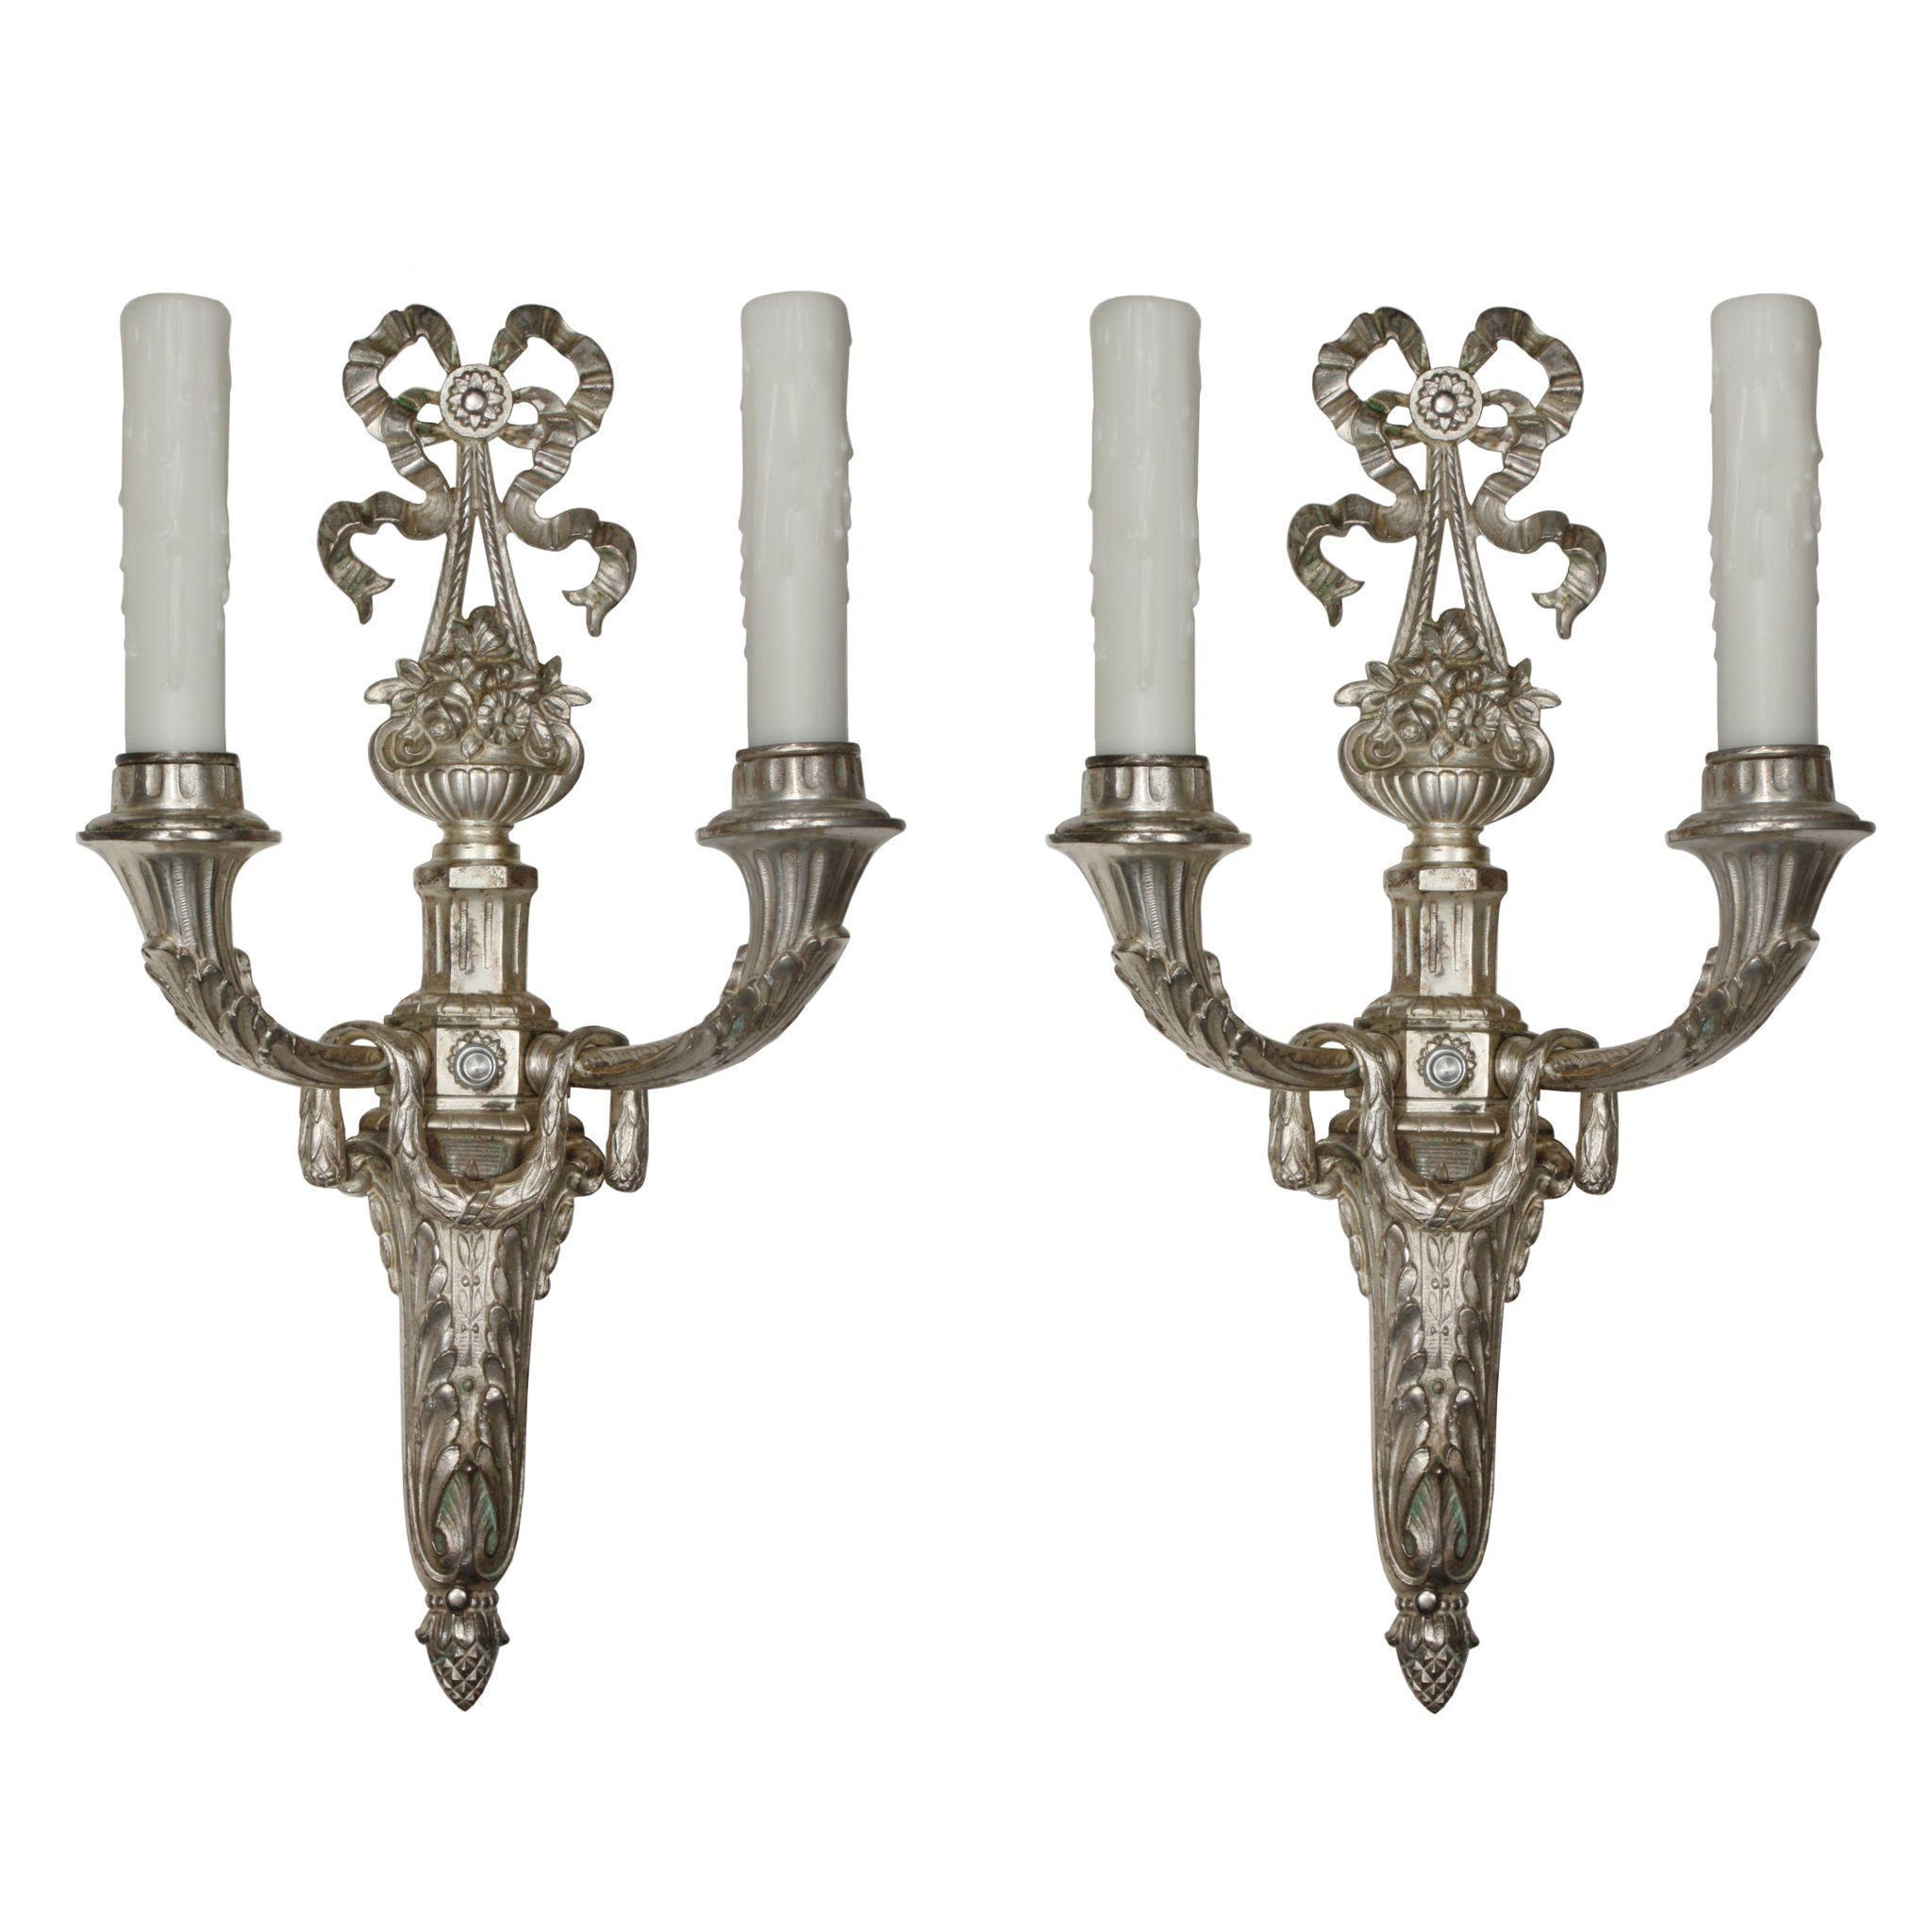 Whimsical Pair of Antique Georgian Sconces from Germany